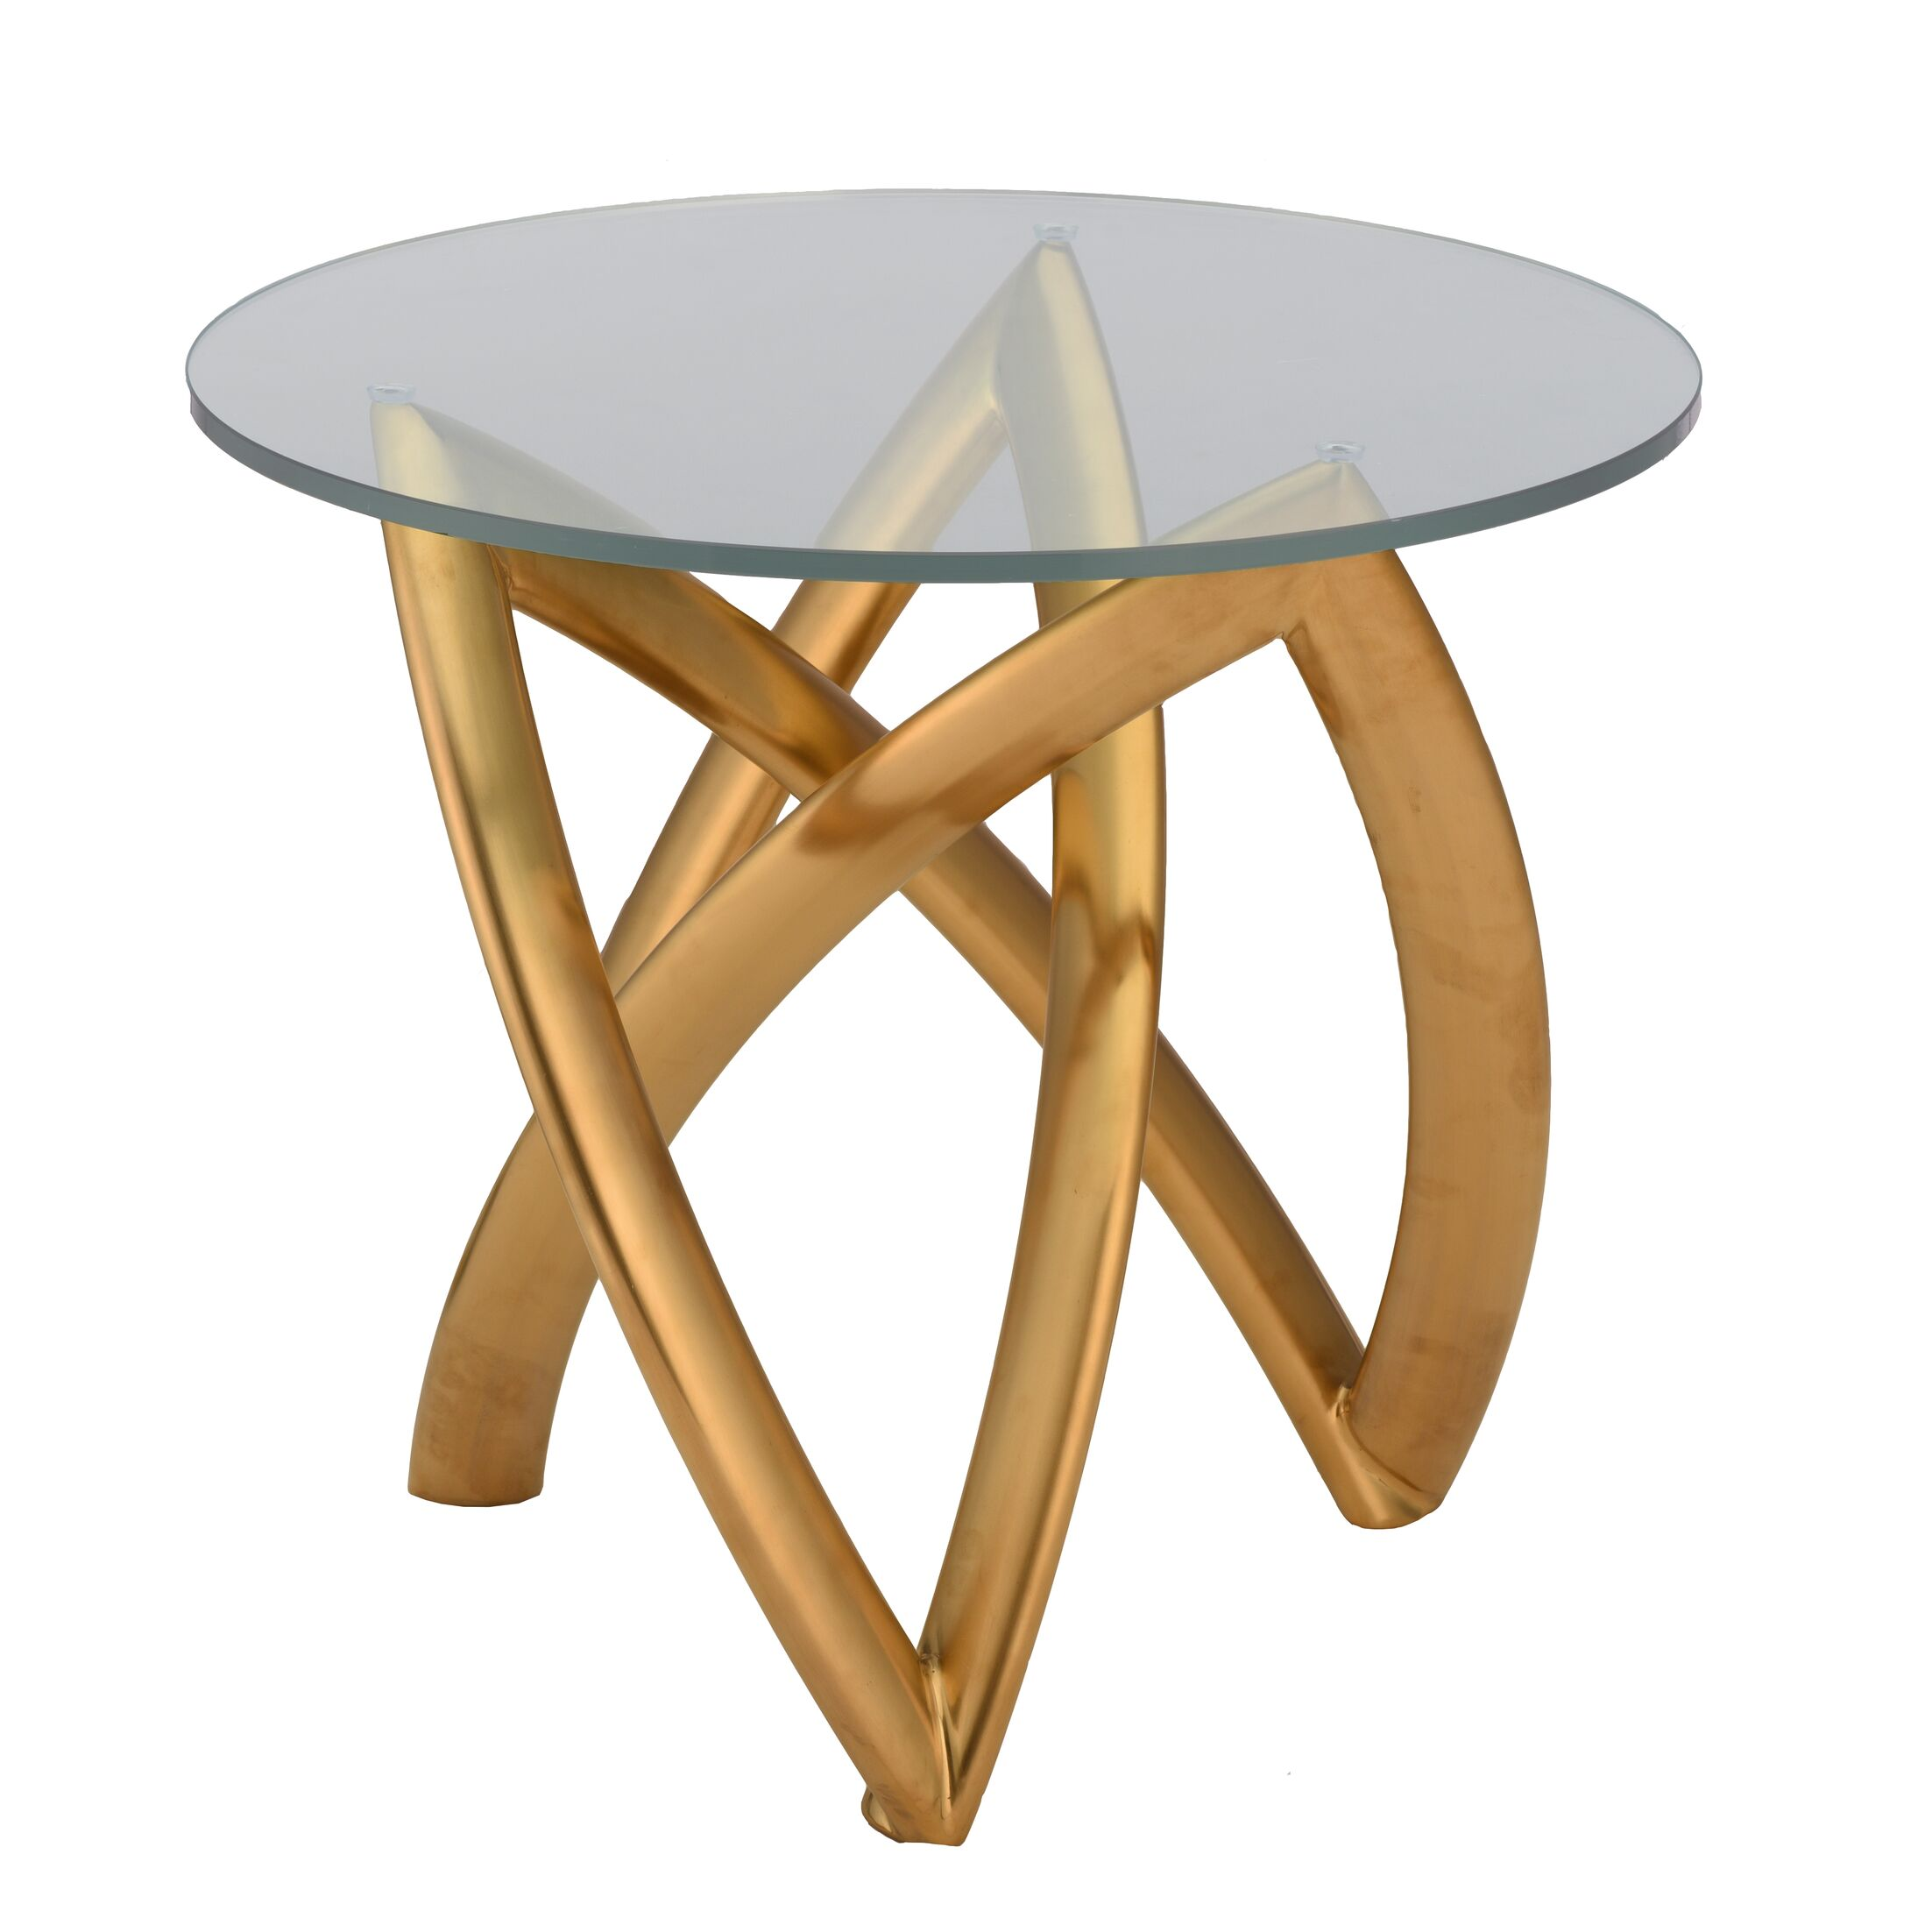 Jaryd End Table Table Base Color: Brushed Gold